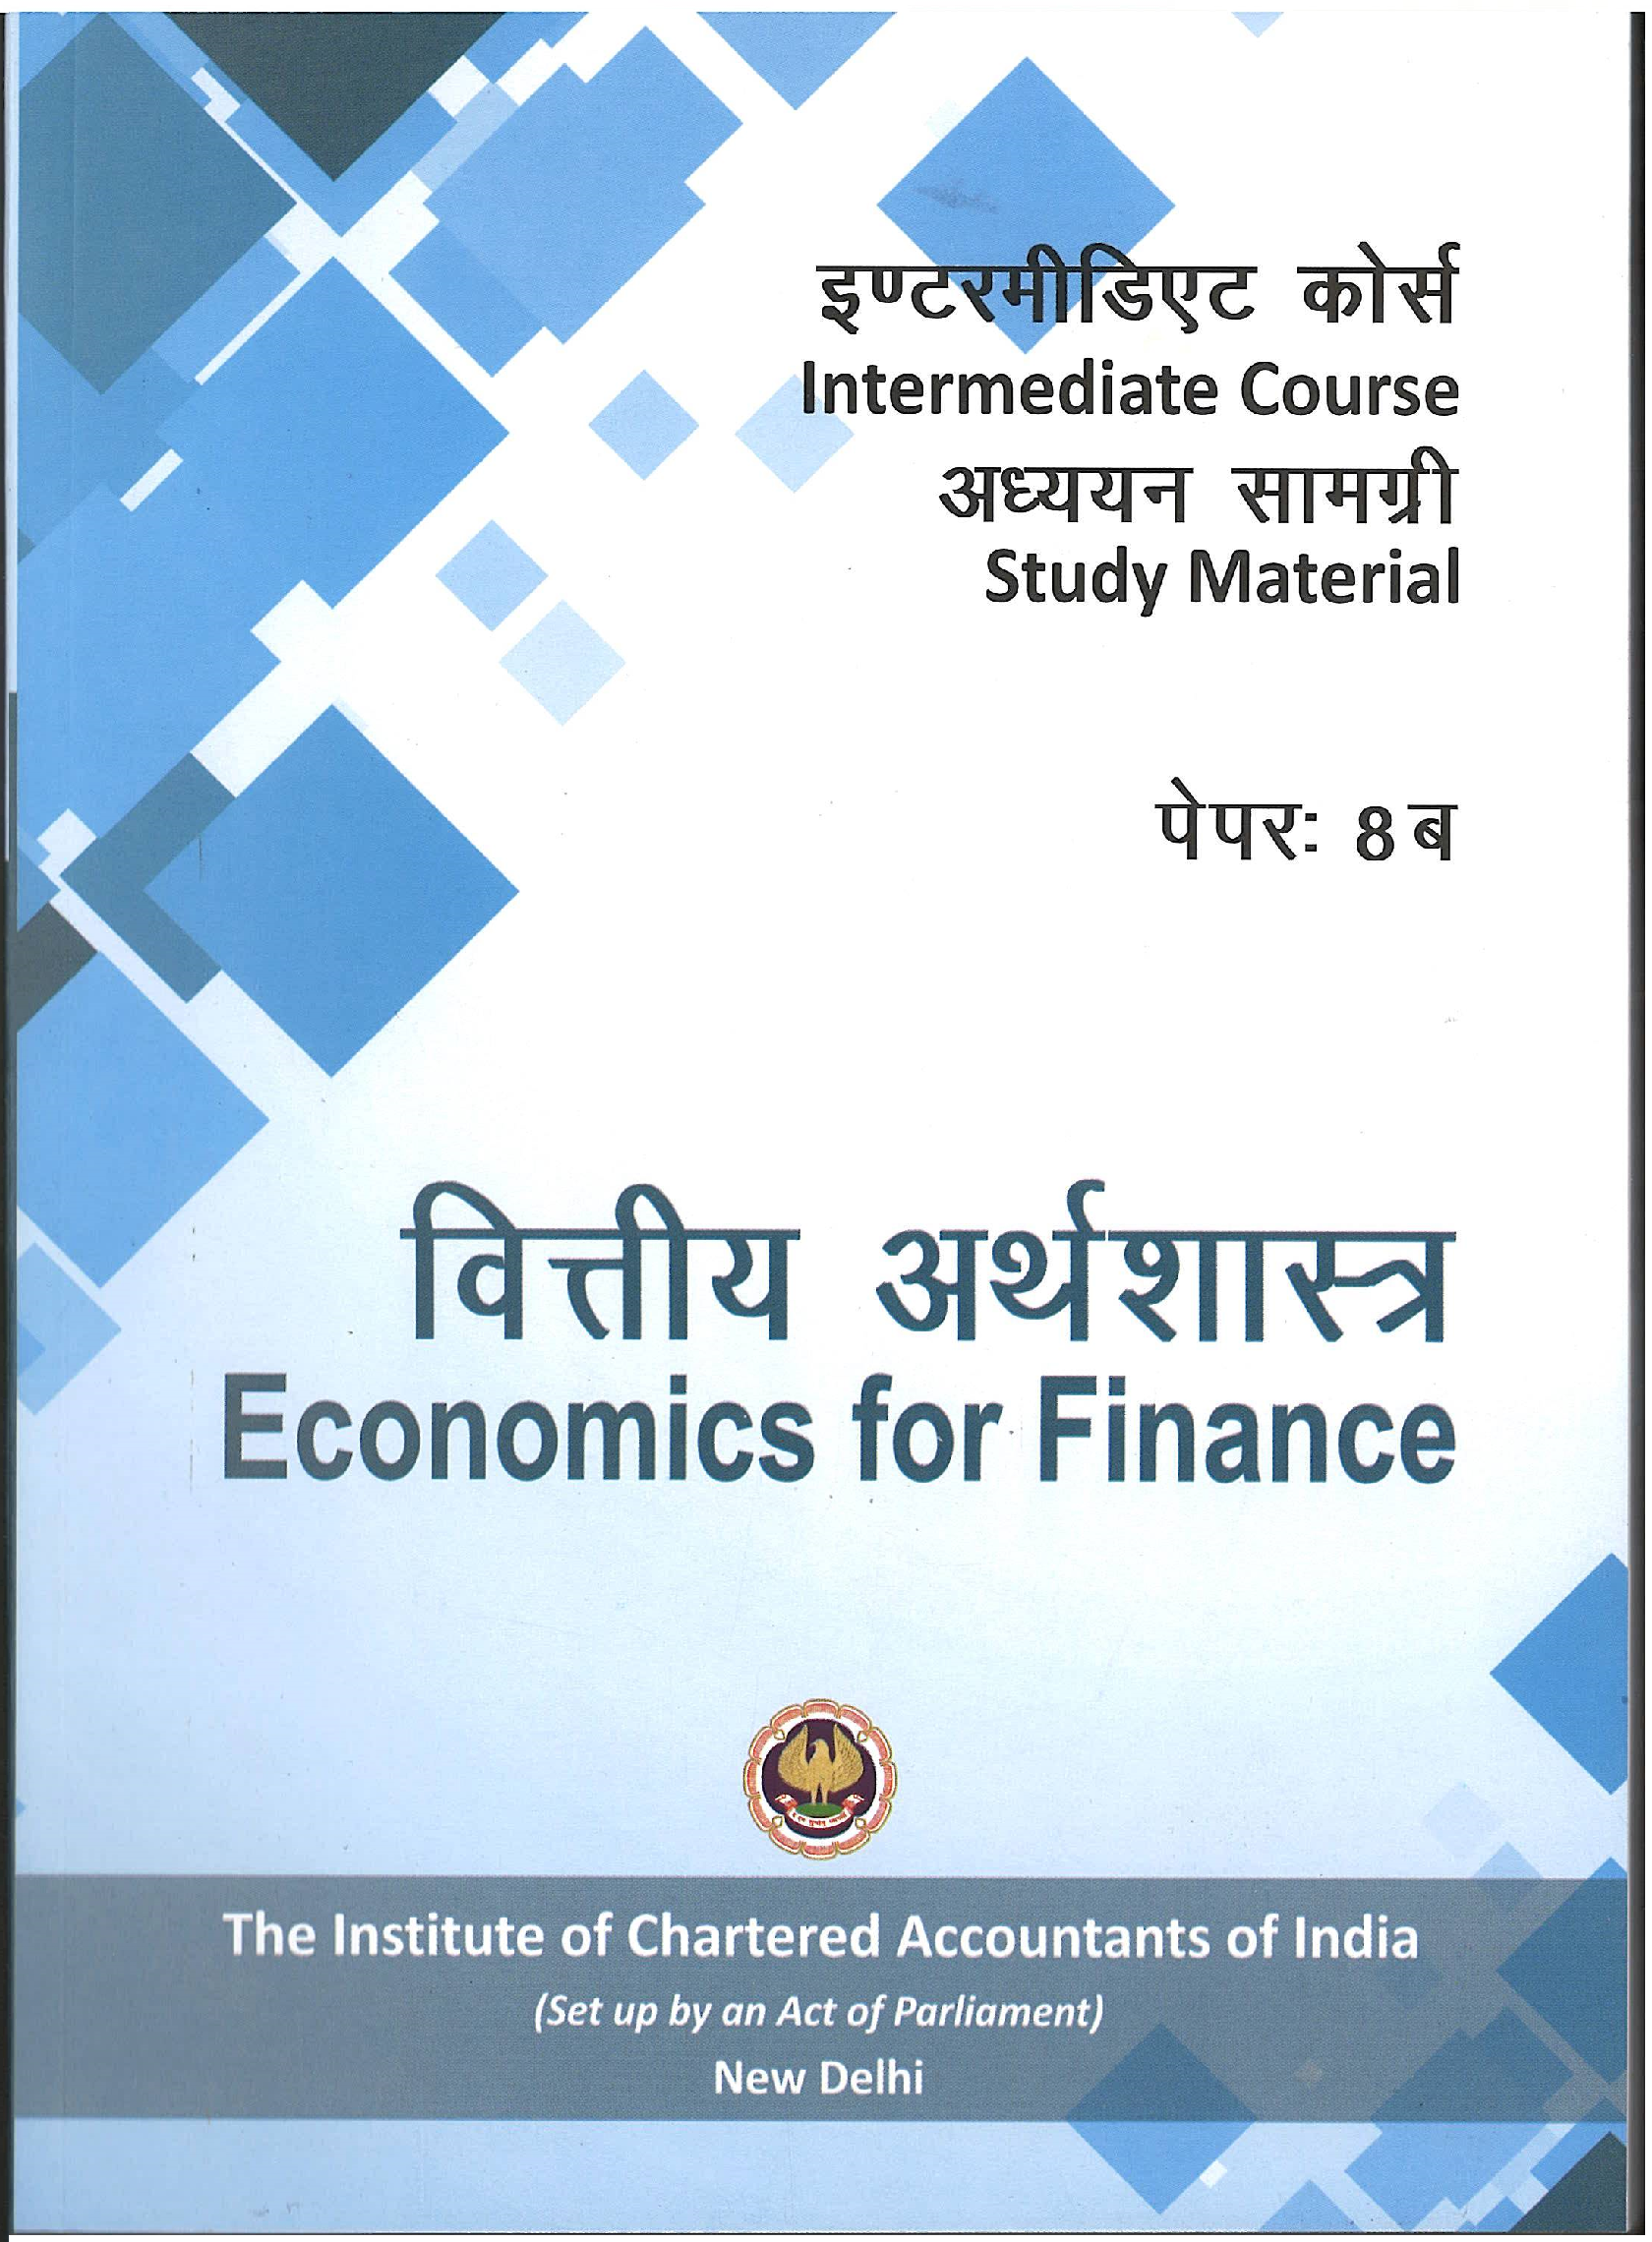 Intermediate Course (Hindi) Study Material Economics for Finance (July, 2017)